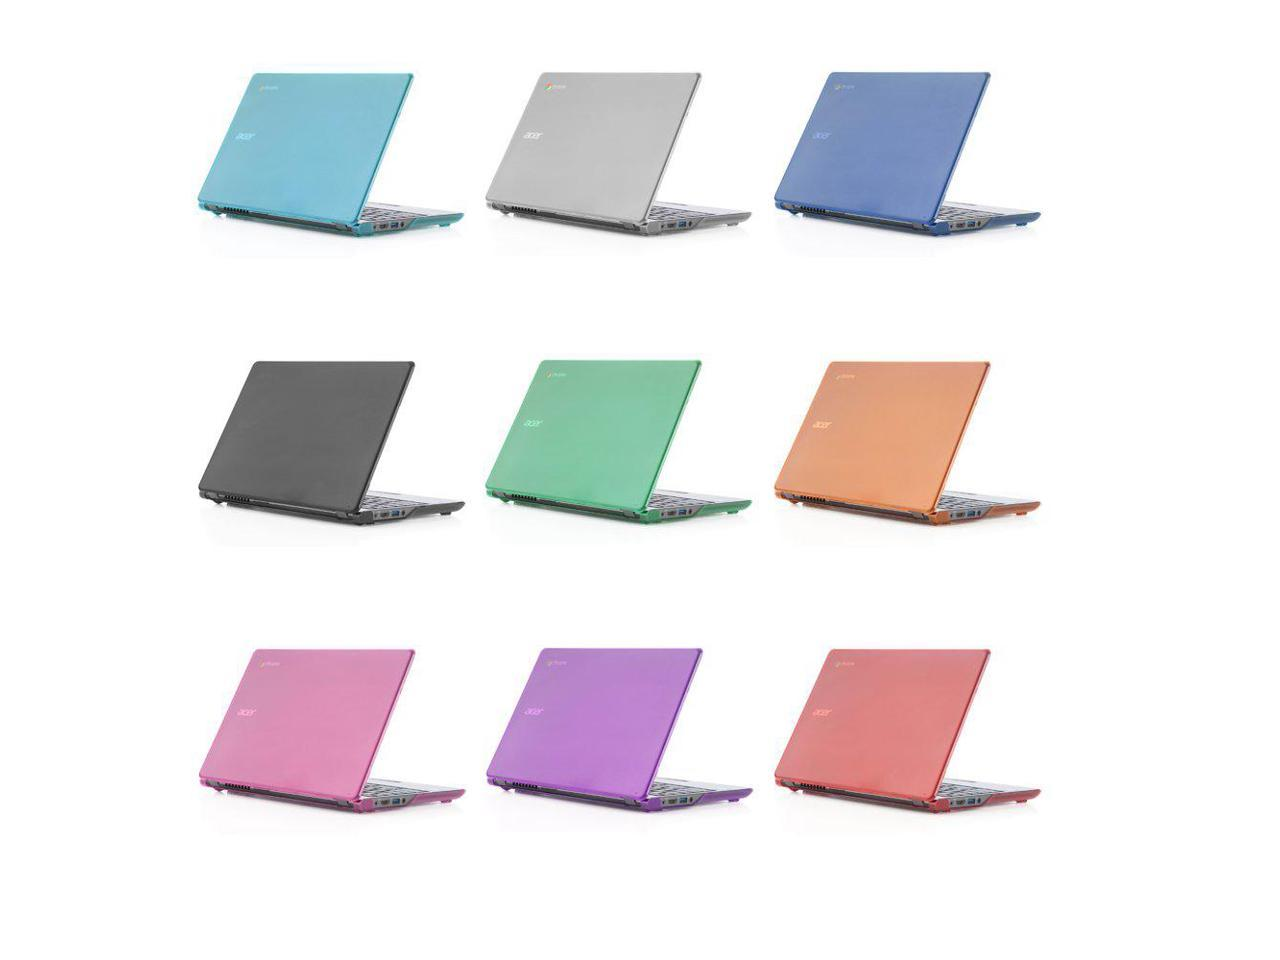 NOT Compatible with Newer 11.6 Acer Chromebook 11 C730 // CB3-111 // CB3-131 Series Laptop Black iPearl mCover Hard Shell Case for 11.6 Acer C720 C720P C740 Series ChromeBook Laptop